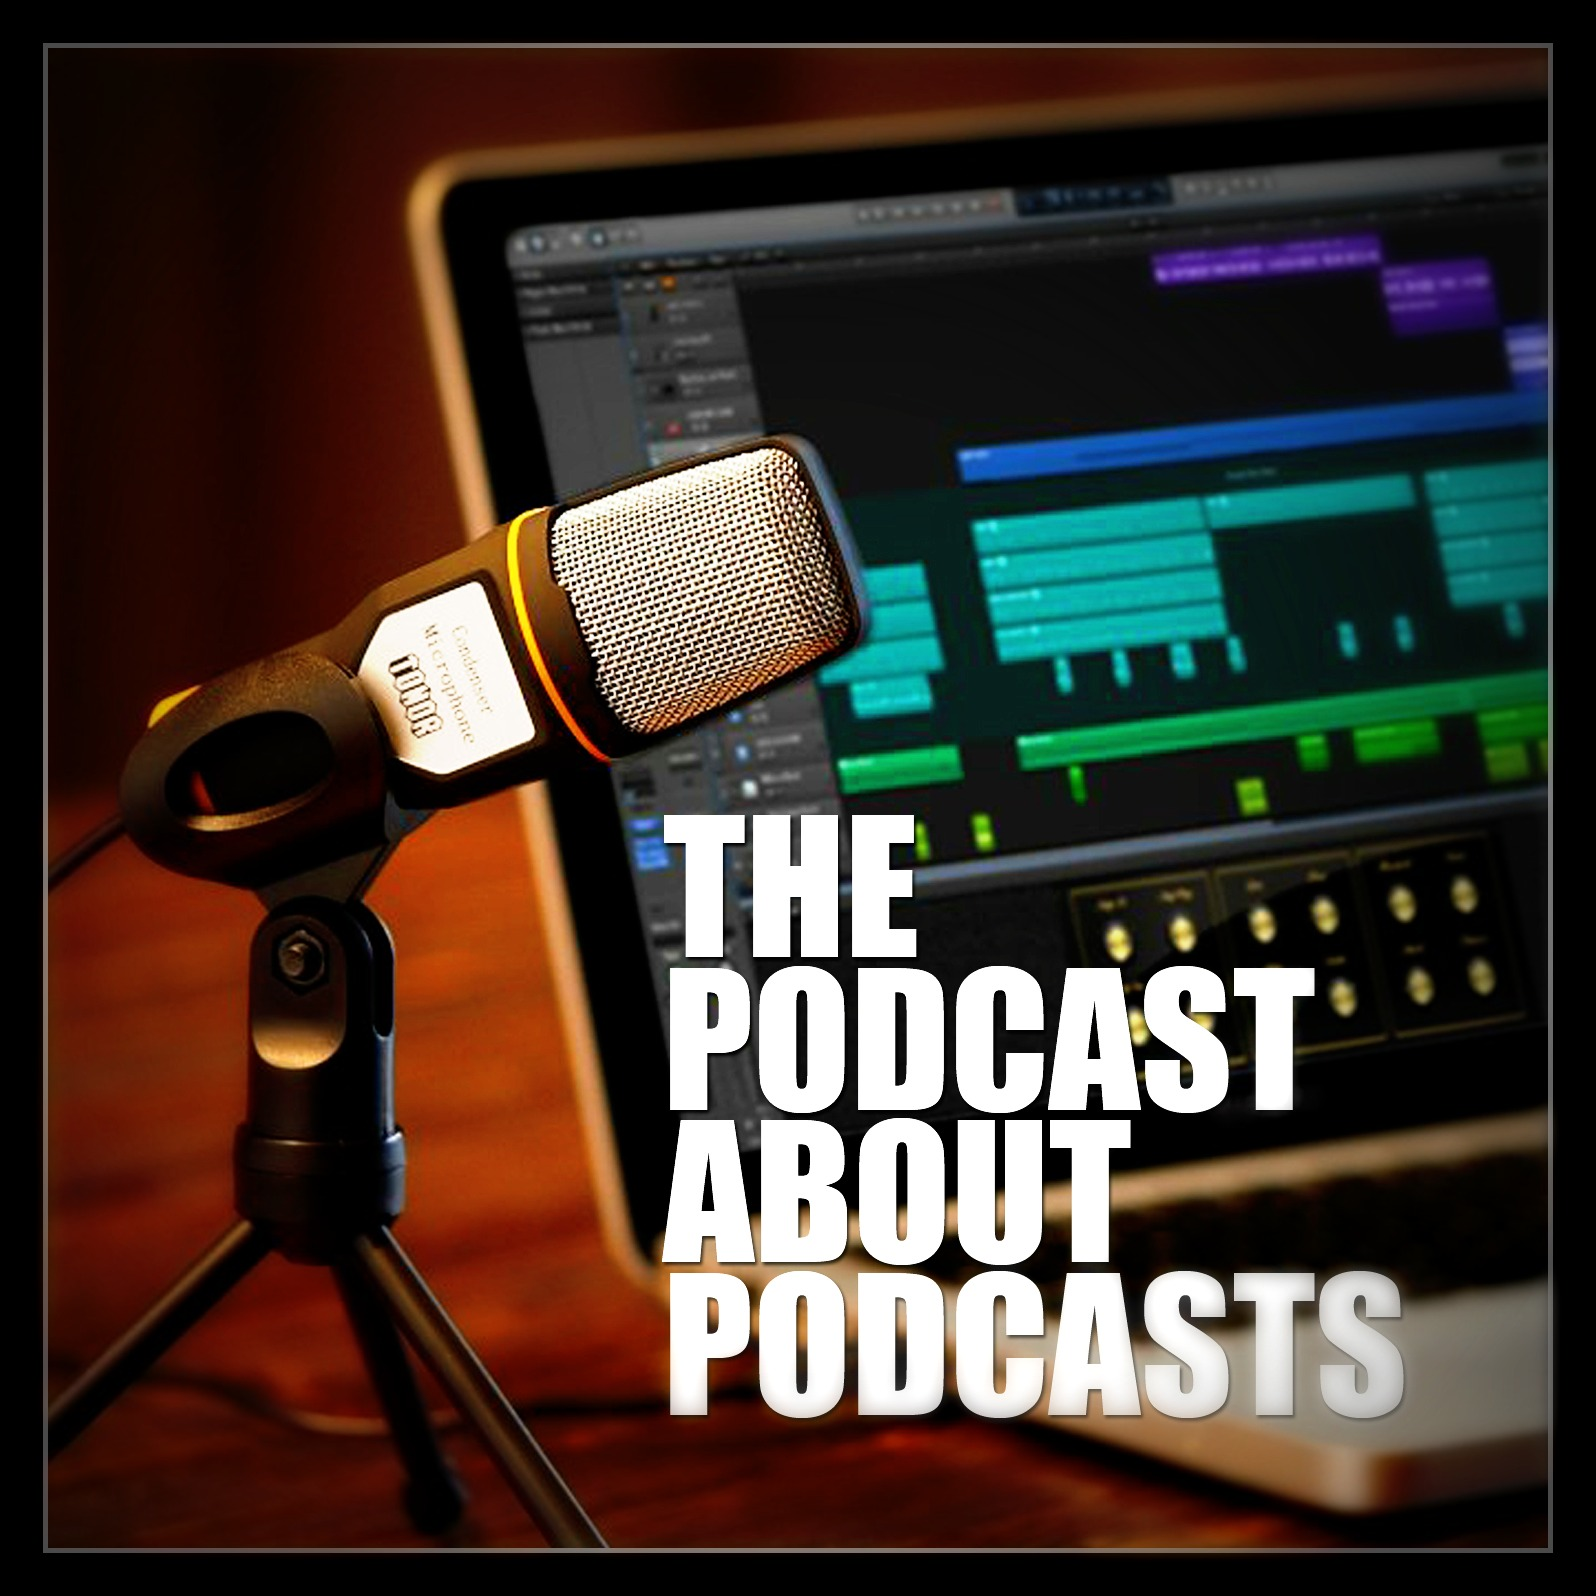 stand interview podcast series - HD1596×1596